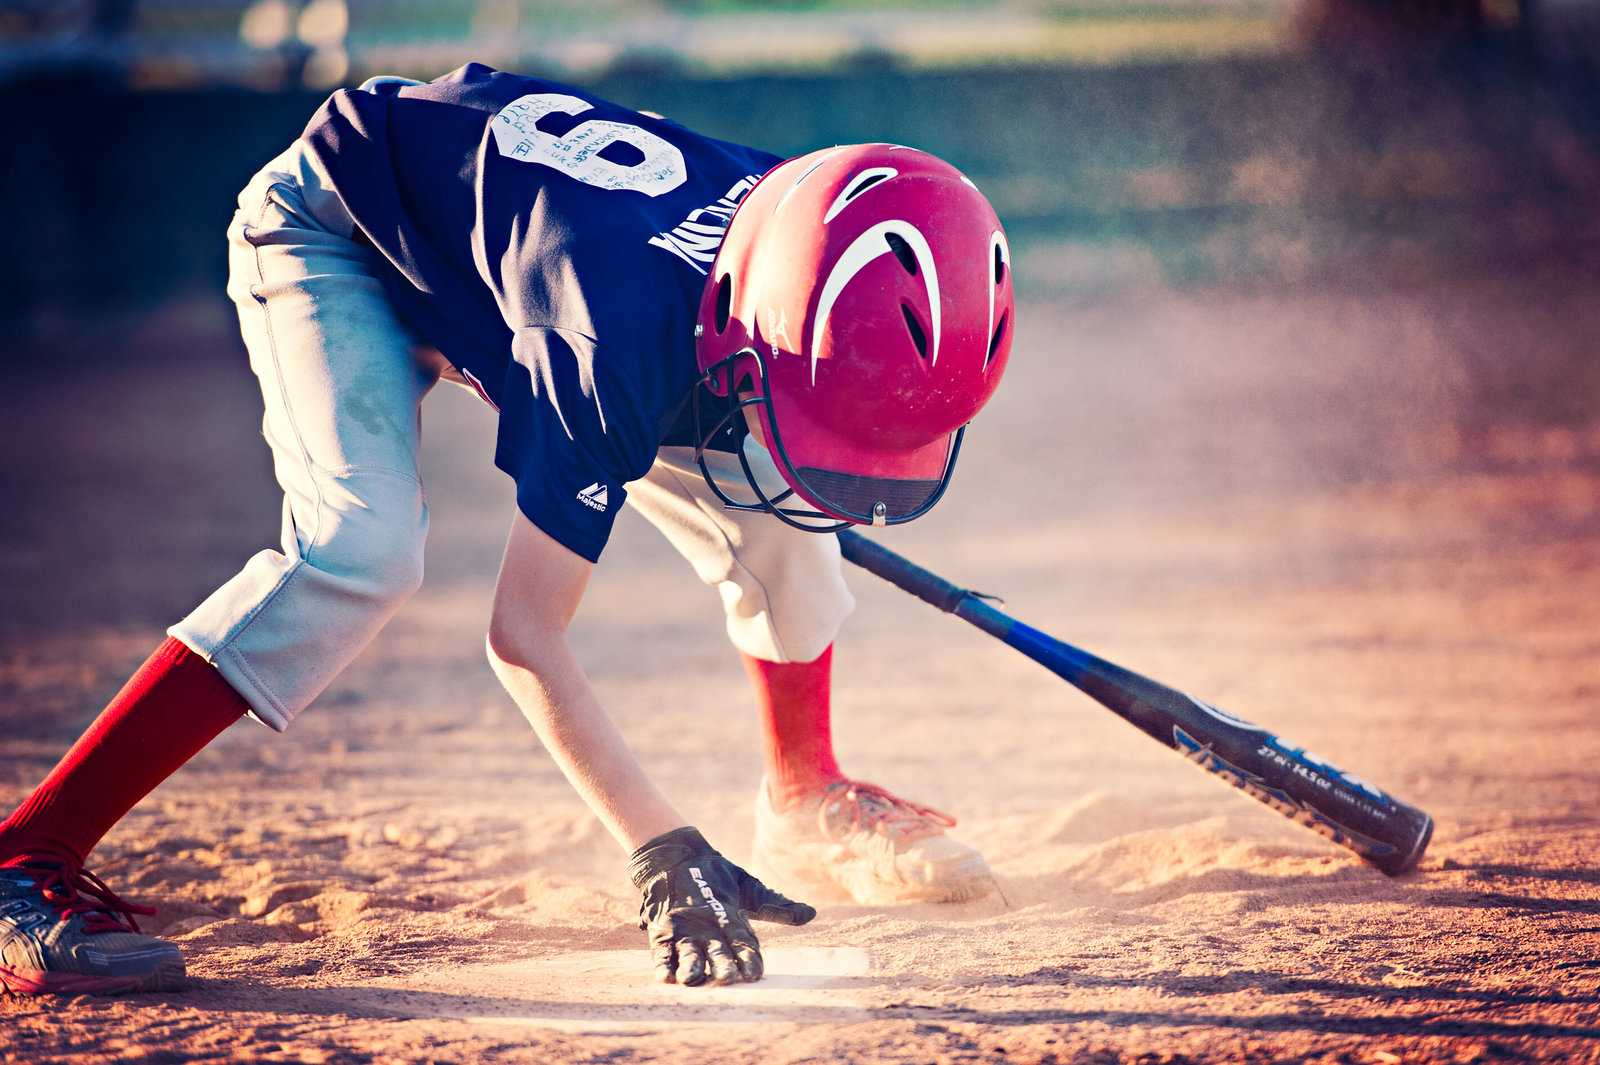 boy playing baseball dusting off home plate with bat